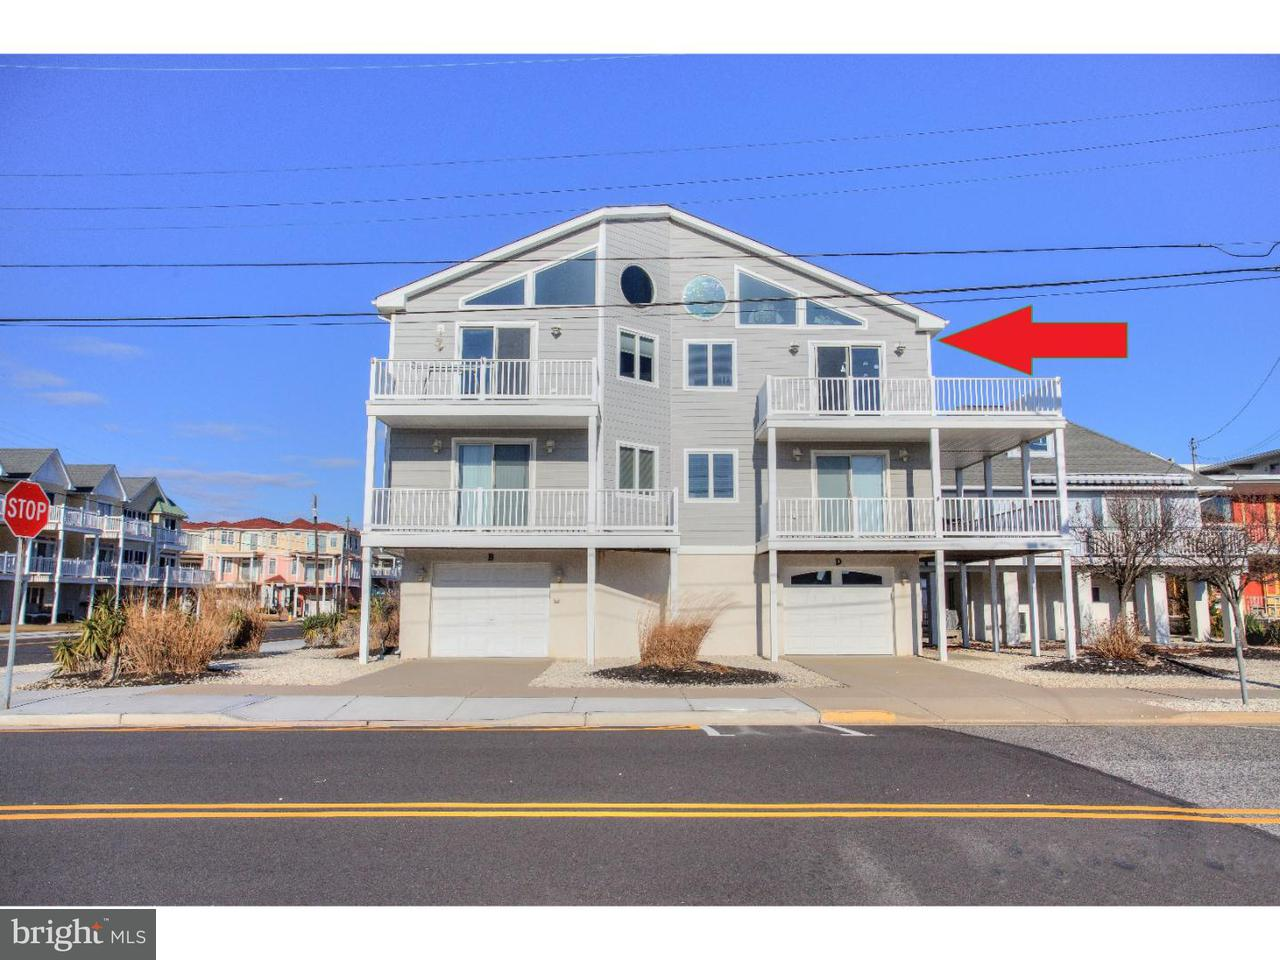 Single Family Home for Sale at 1007 OCEAN AVE #D North Wildwood, New Jersey 08260 United States